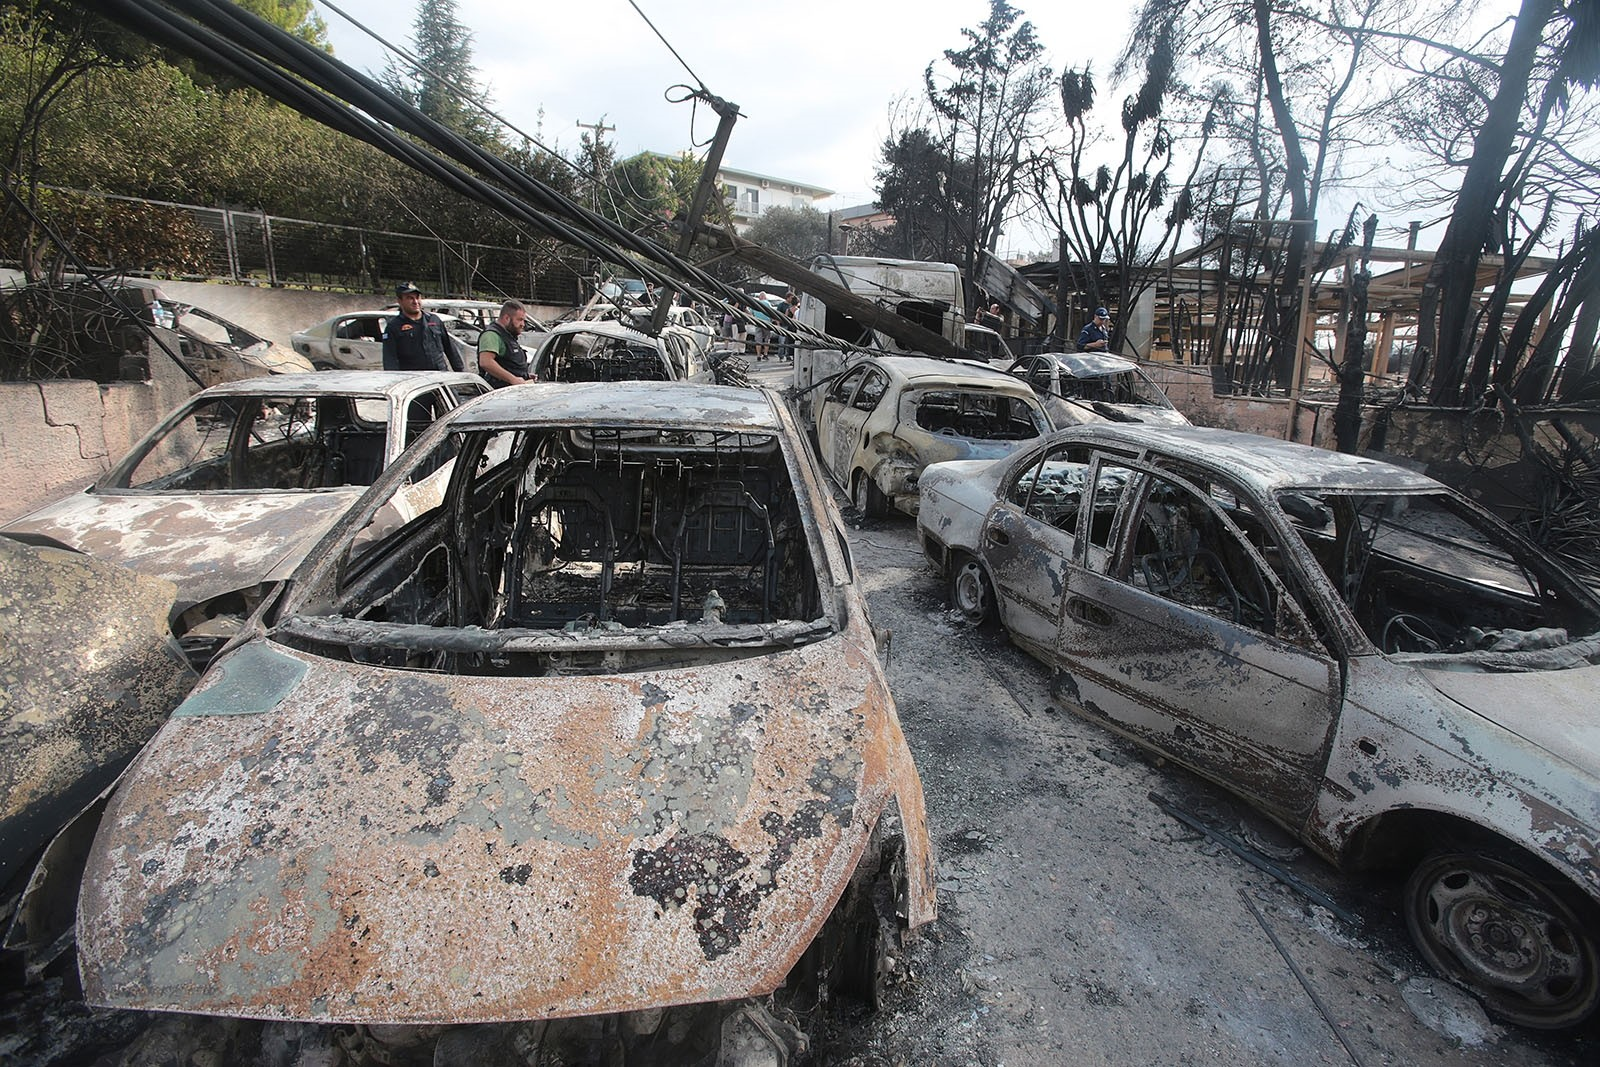 A view of burned cars after a fire in Argyra Akti, Mati, close to Nea Makri, in Attica, Greece, July 24, 2018.